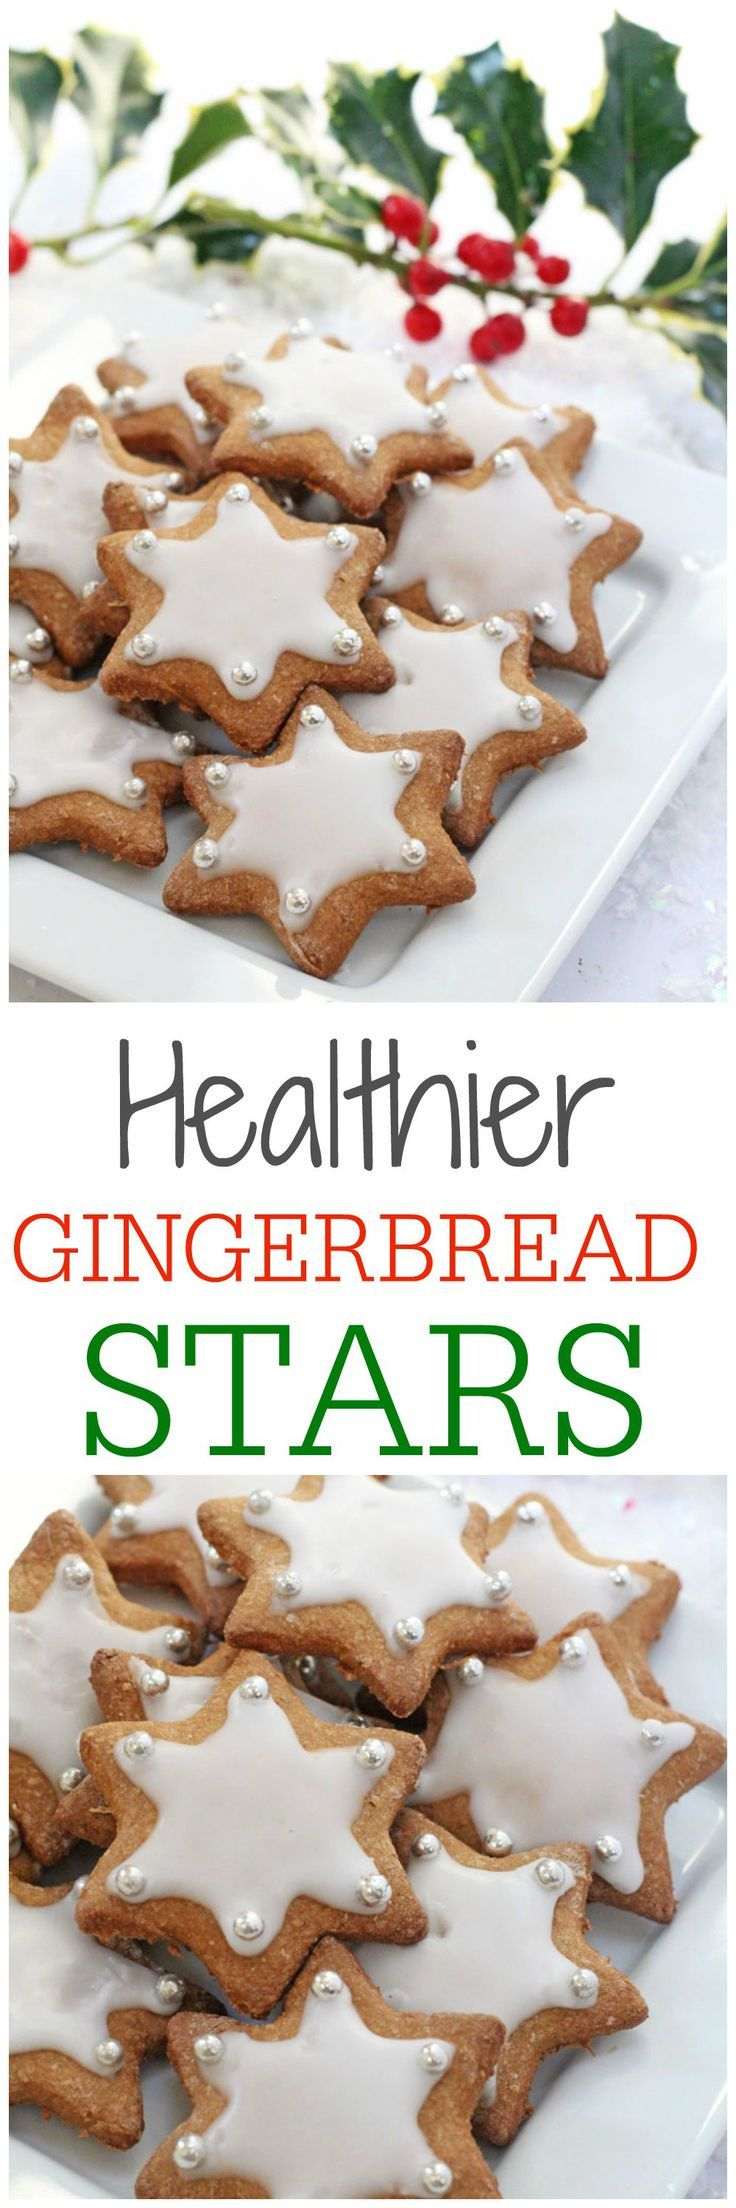 A healthier version of these delicious Christmas Gingerbread Star Cookies made with wholemeal spelt flour, coconut sugar and maple syrup | My Fussy Eater blog